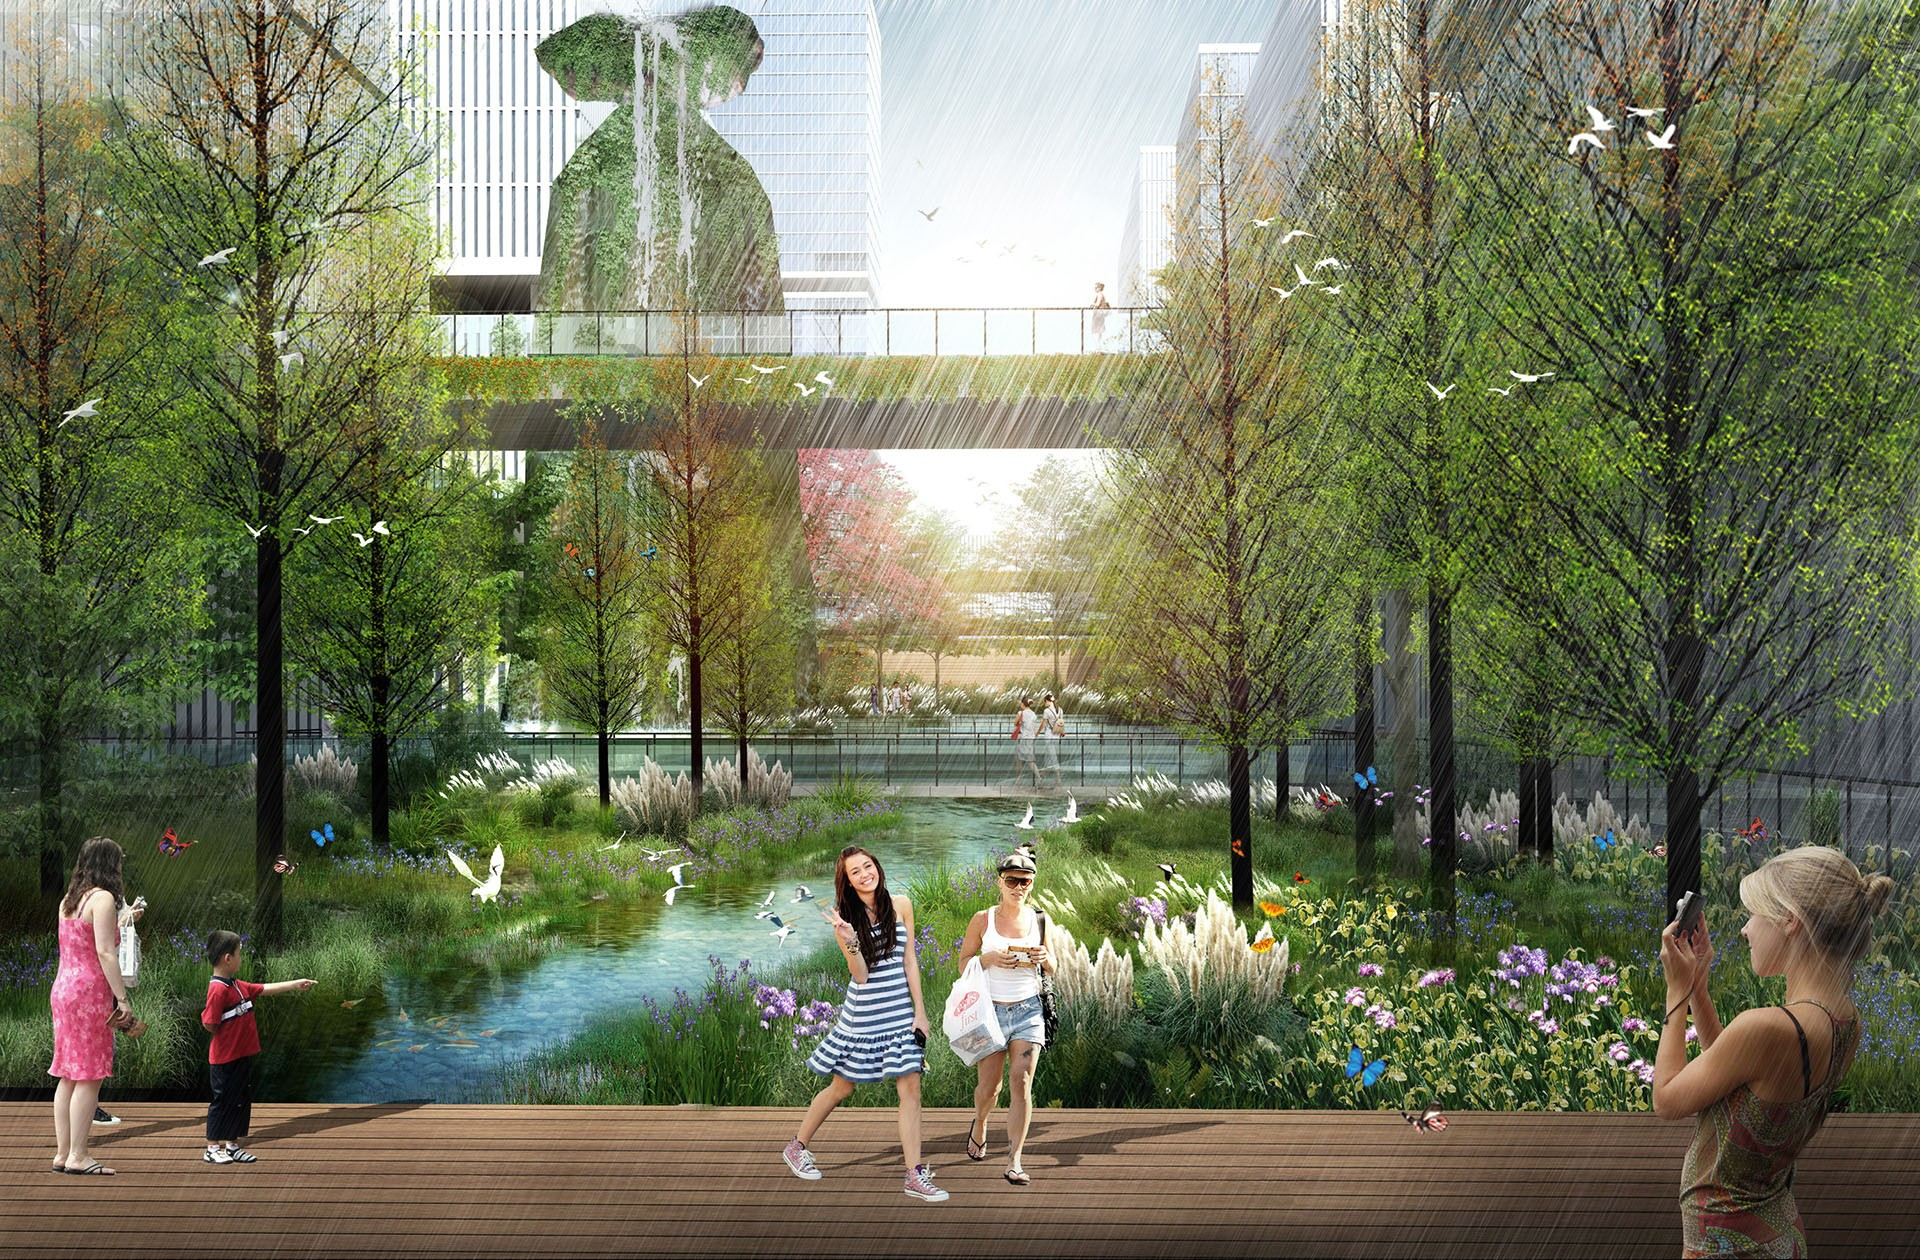 Shenzhen bay tech eco park crja ibi group for Eco landscape design